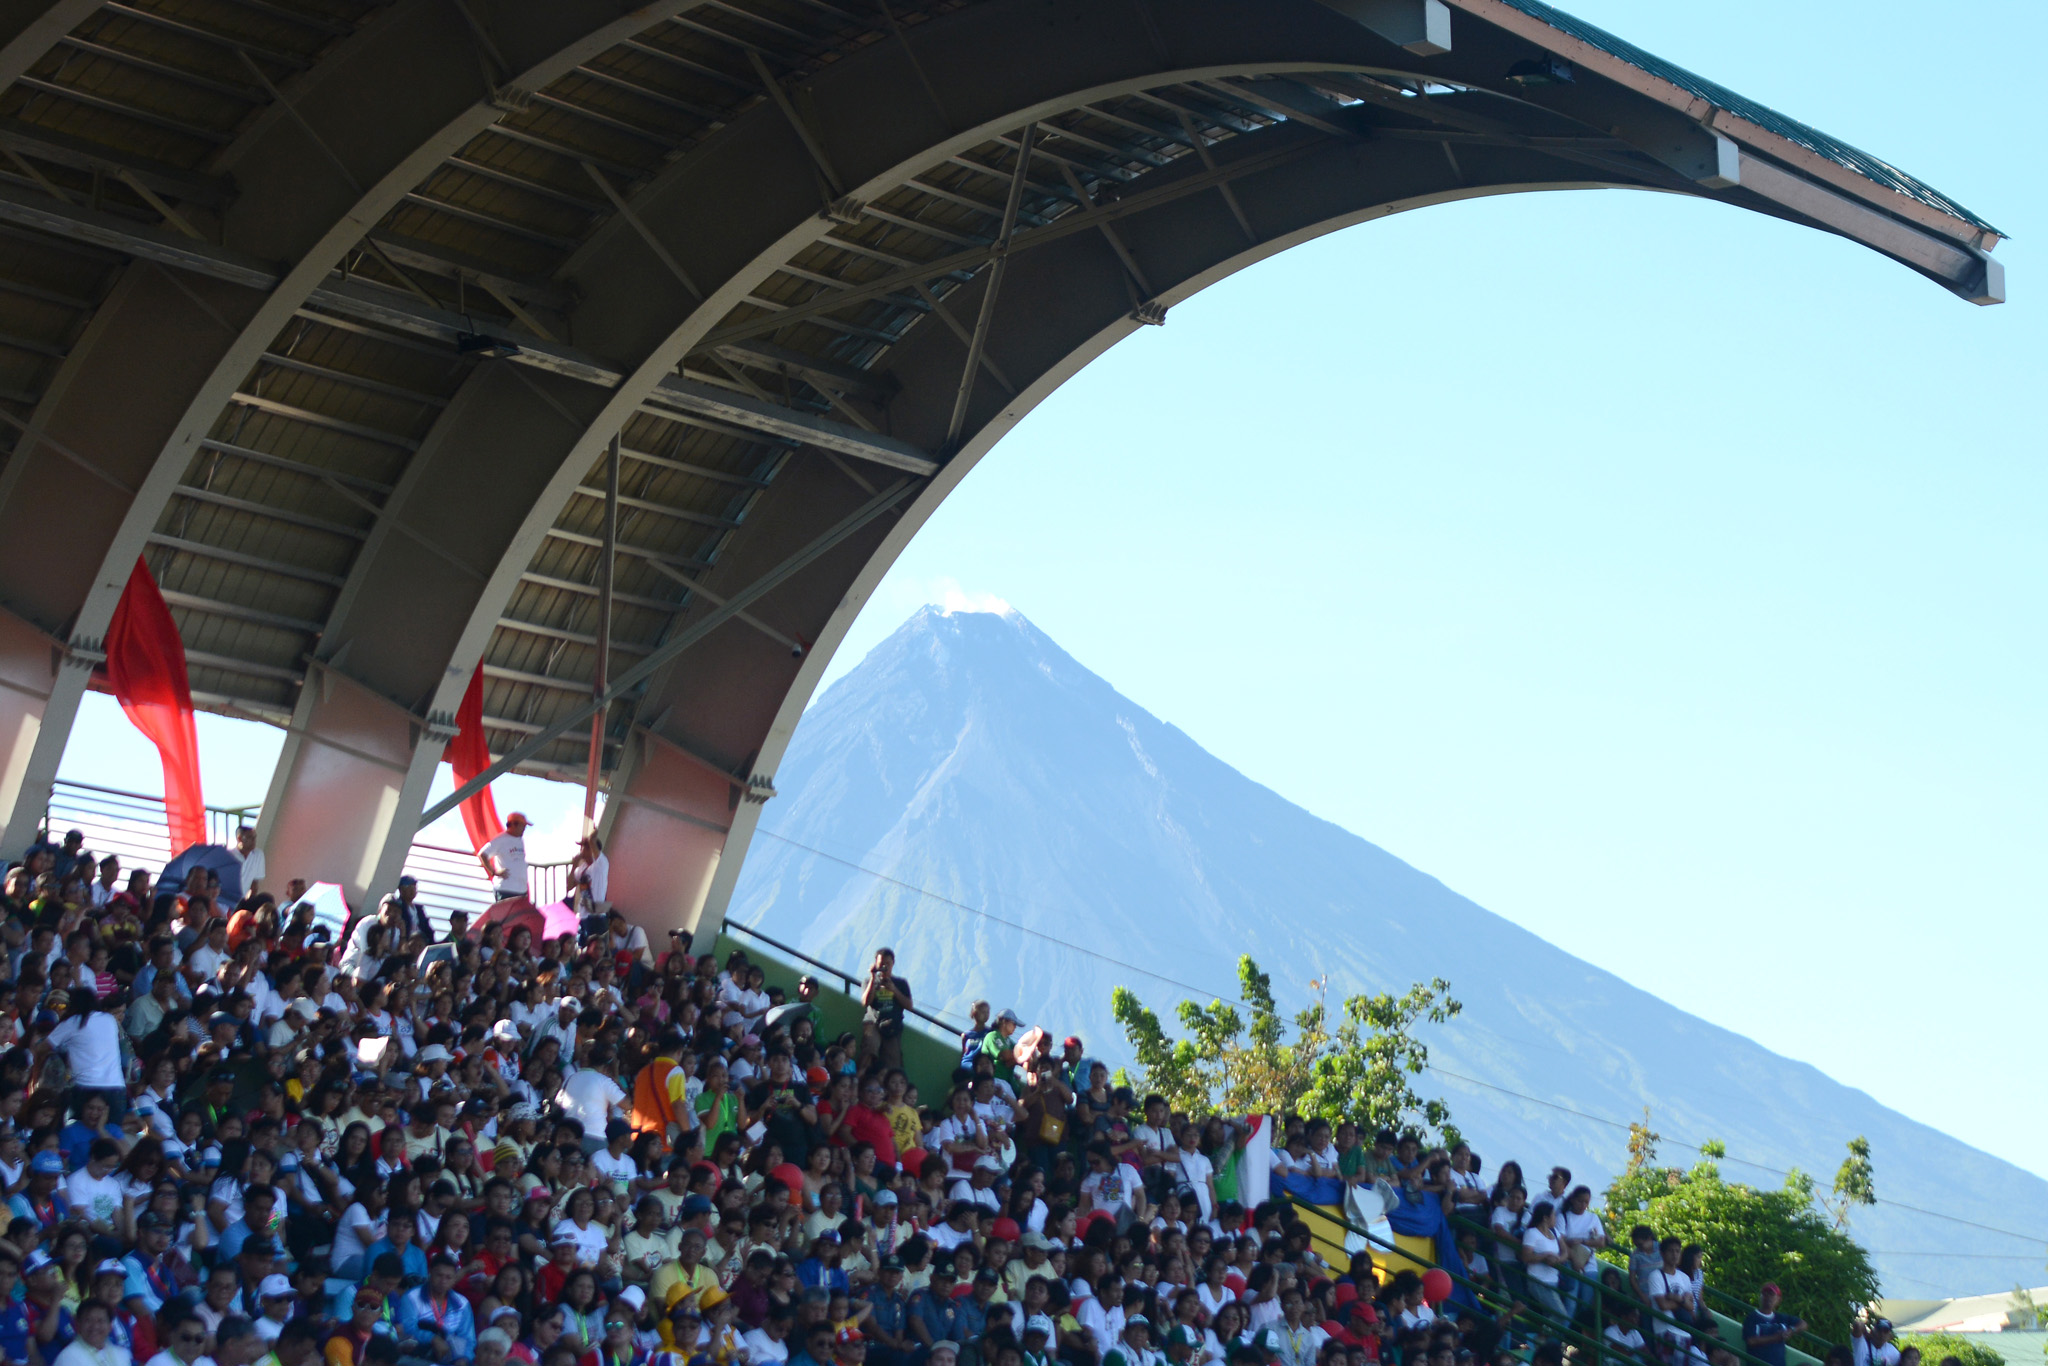 MAYON. A clear view of the Mayon Volcano greets delegates at the ceremony. Photo by Roy Secretario/ Rappler